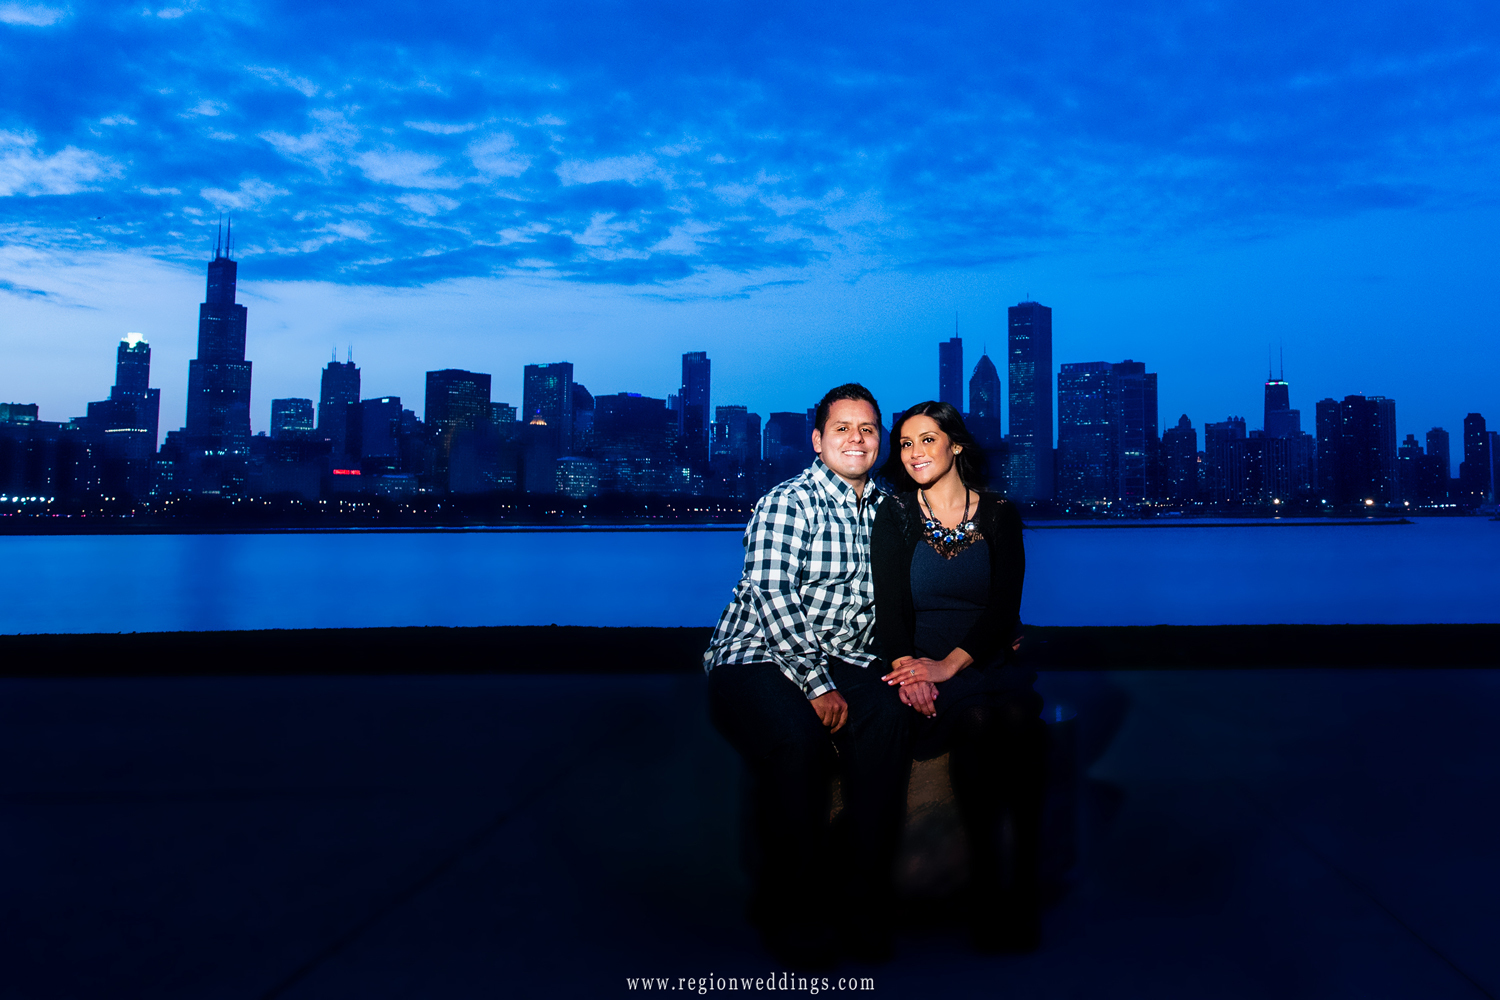 The blue Chicago skyline at dusk with a happily engaged couple sitting on the terrace of the Adler Planetarium at the Museum Campus on the lake.